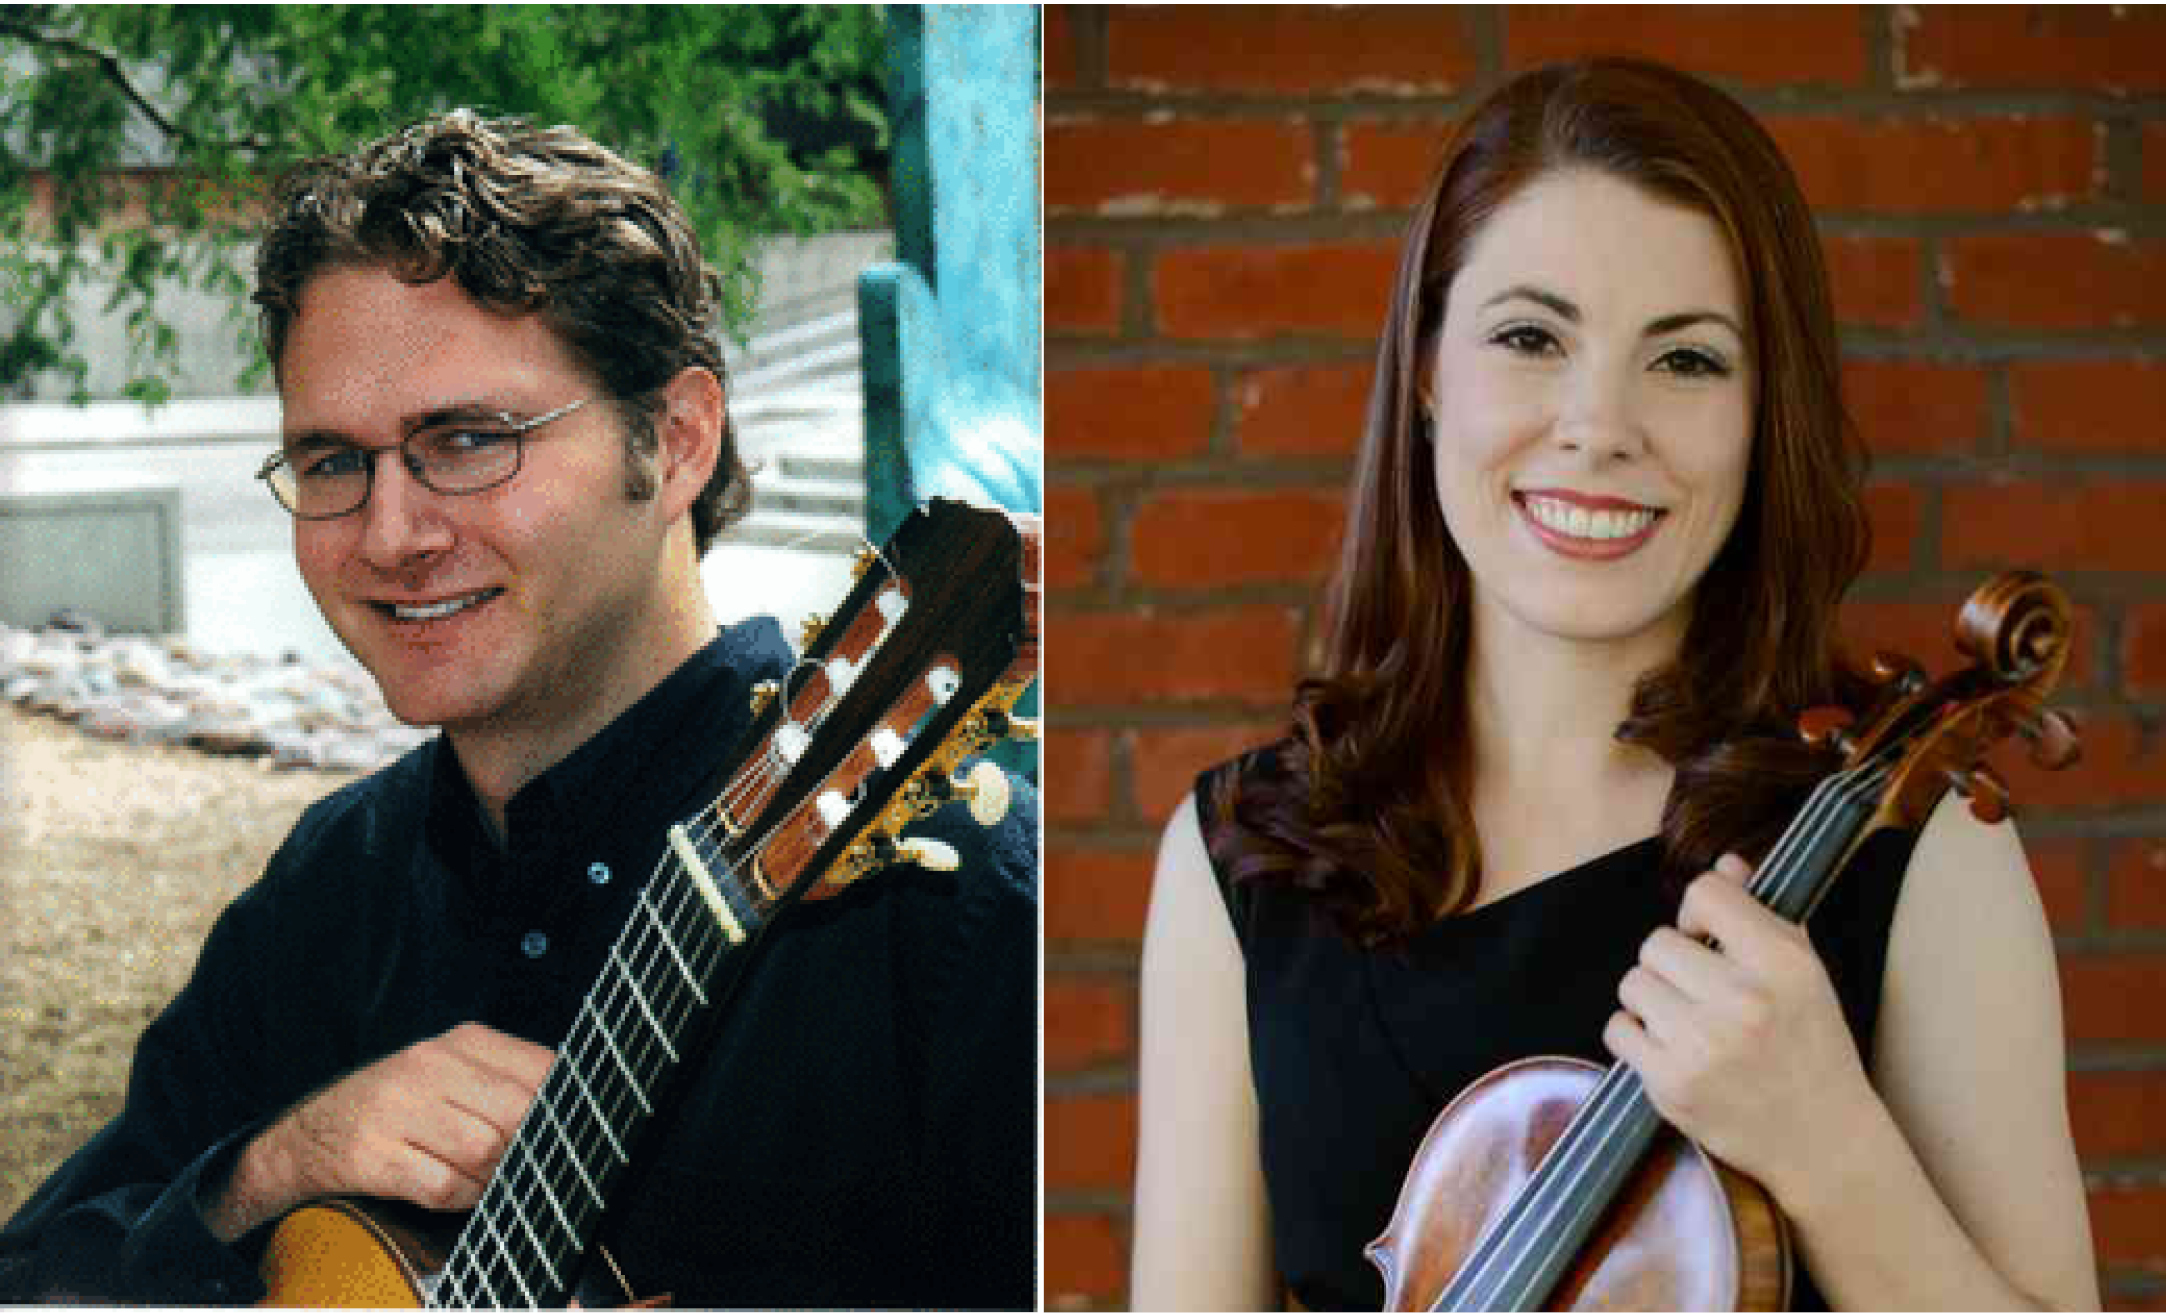 Cale Hoeflicker (guitar) and Molly Christie (violin)